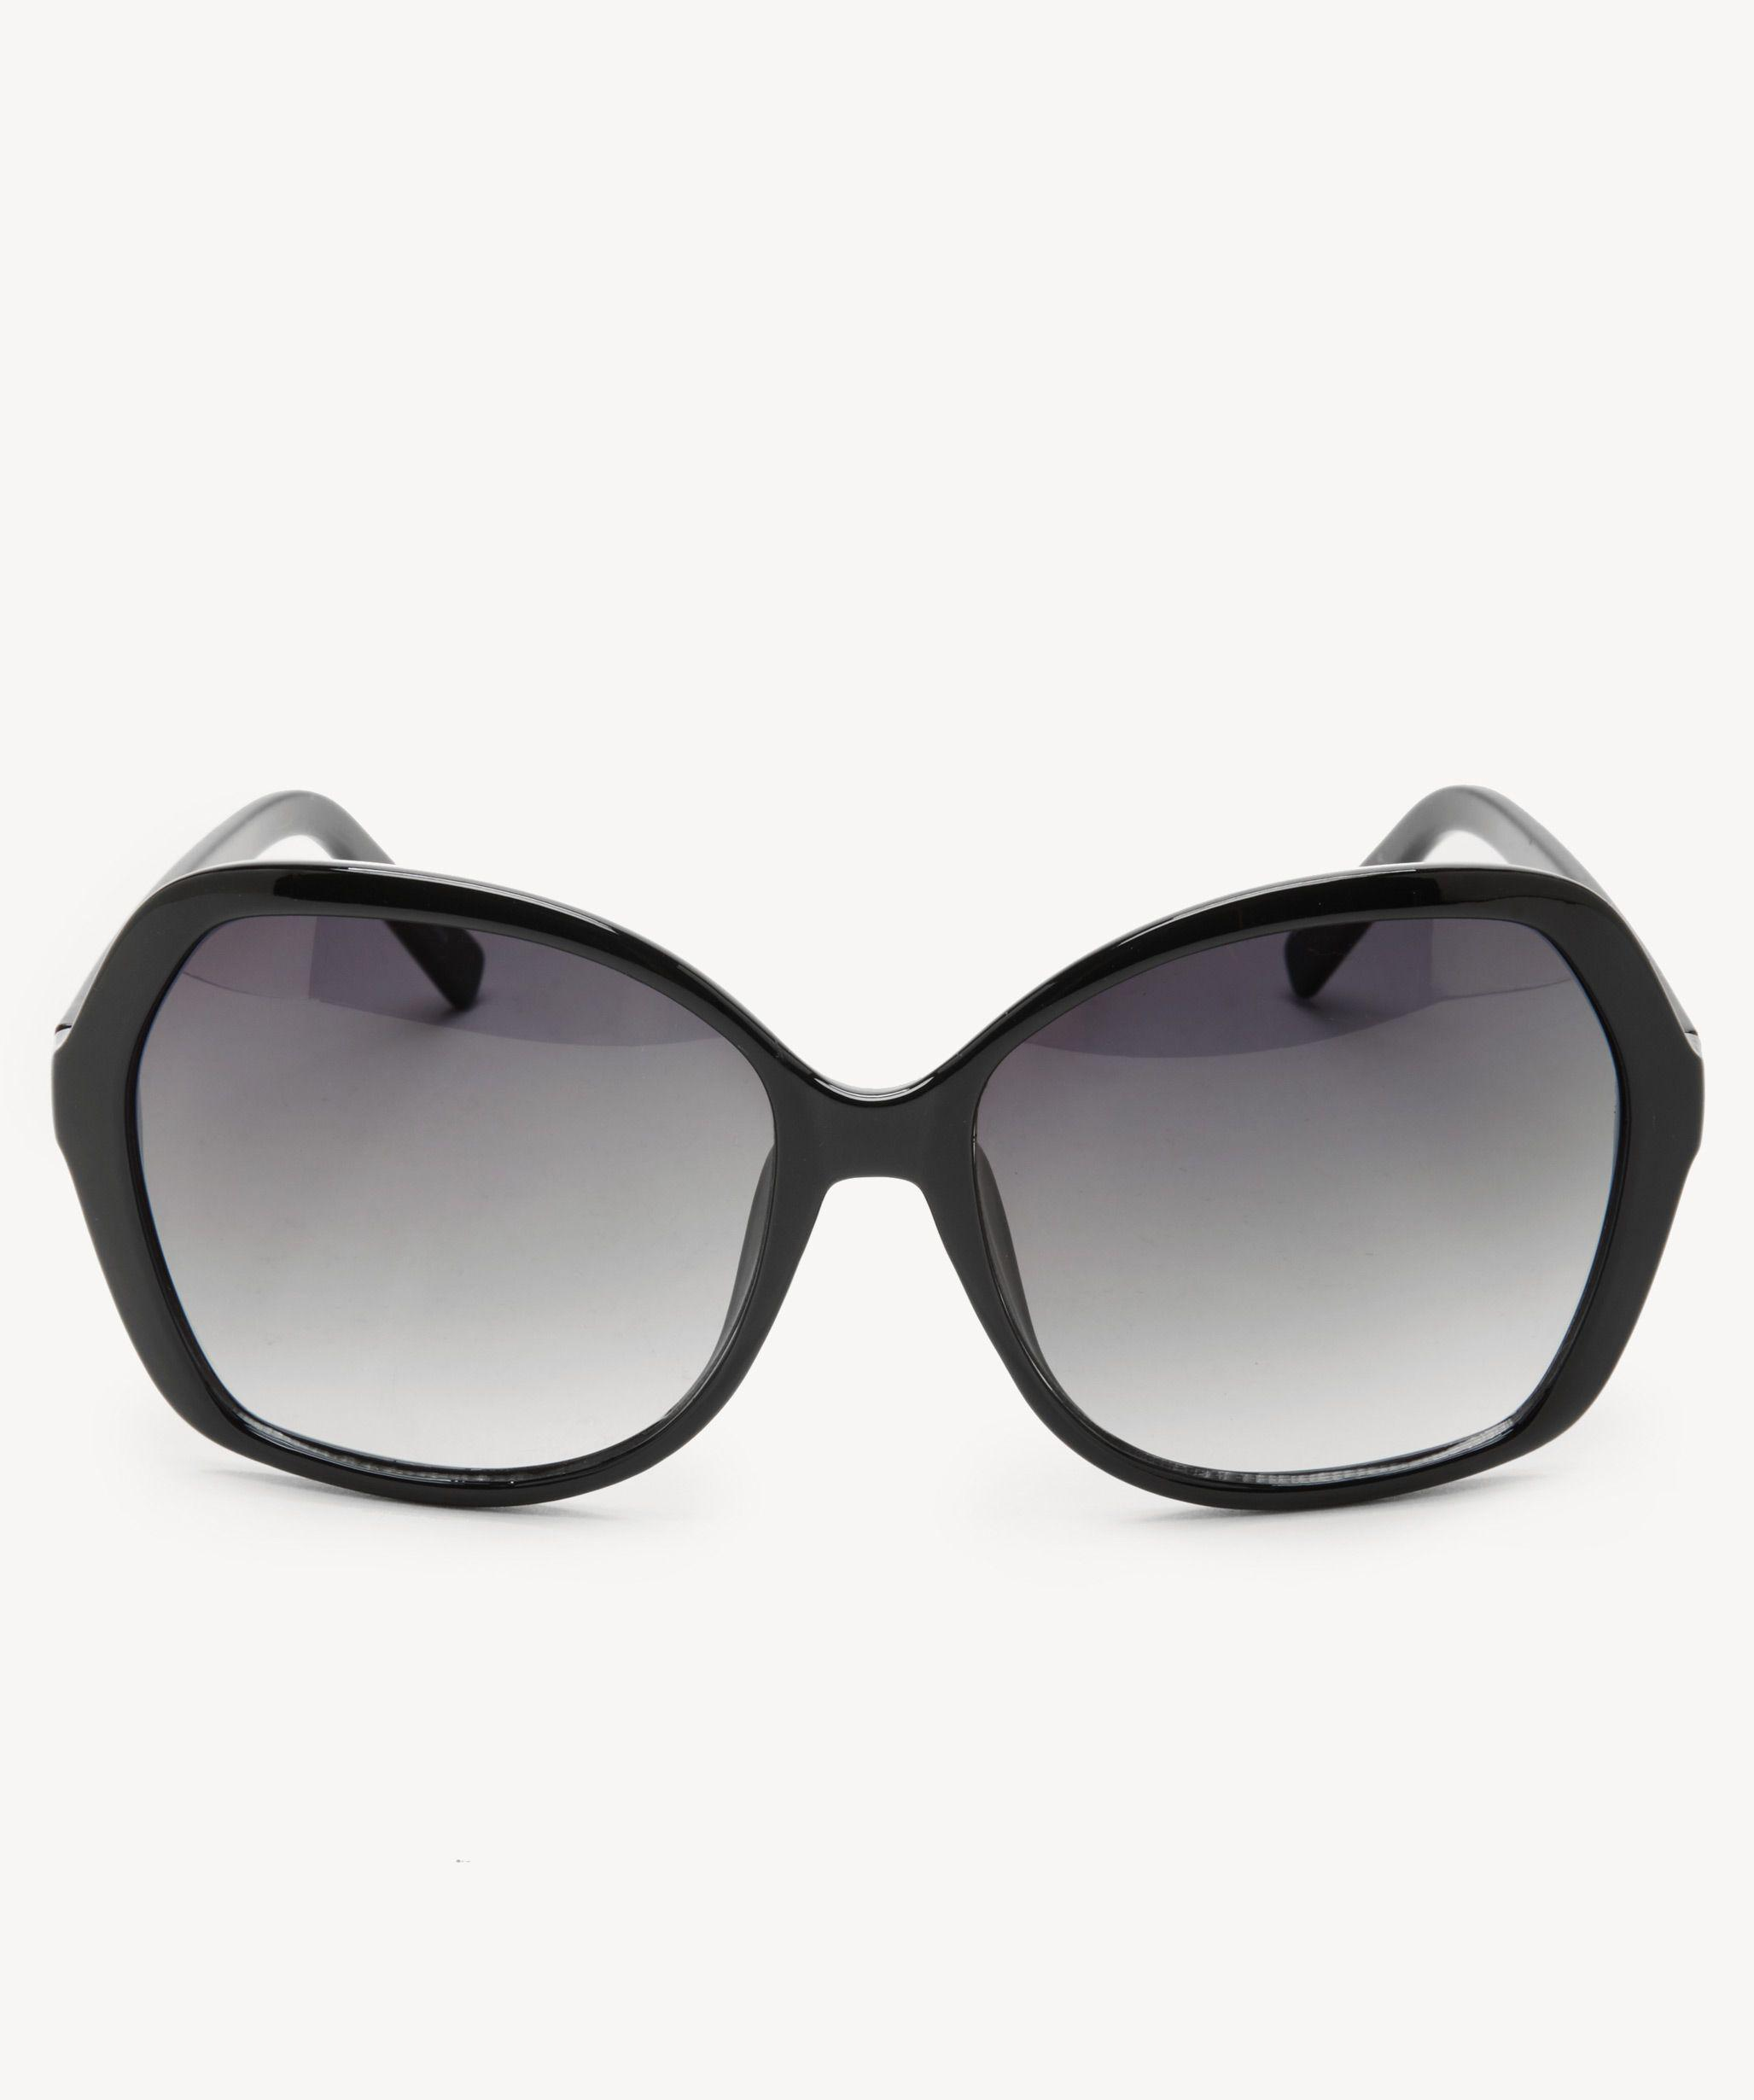 fce936499b0 Lyst - Sole Society Melo Oversize Square Frame Sunglasses in Black